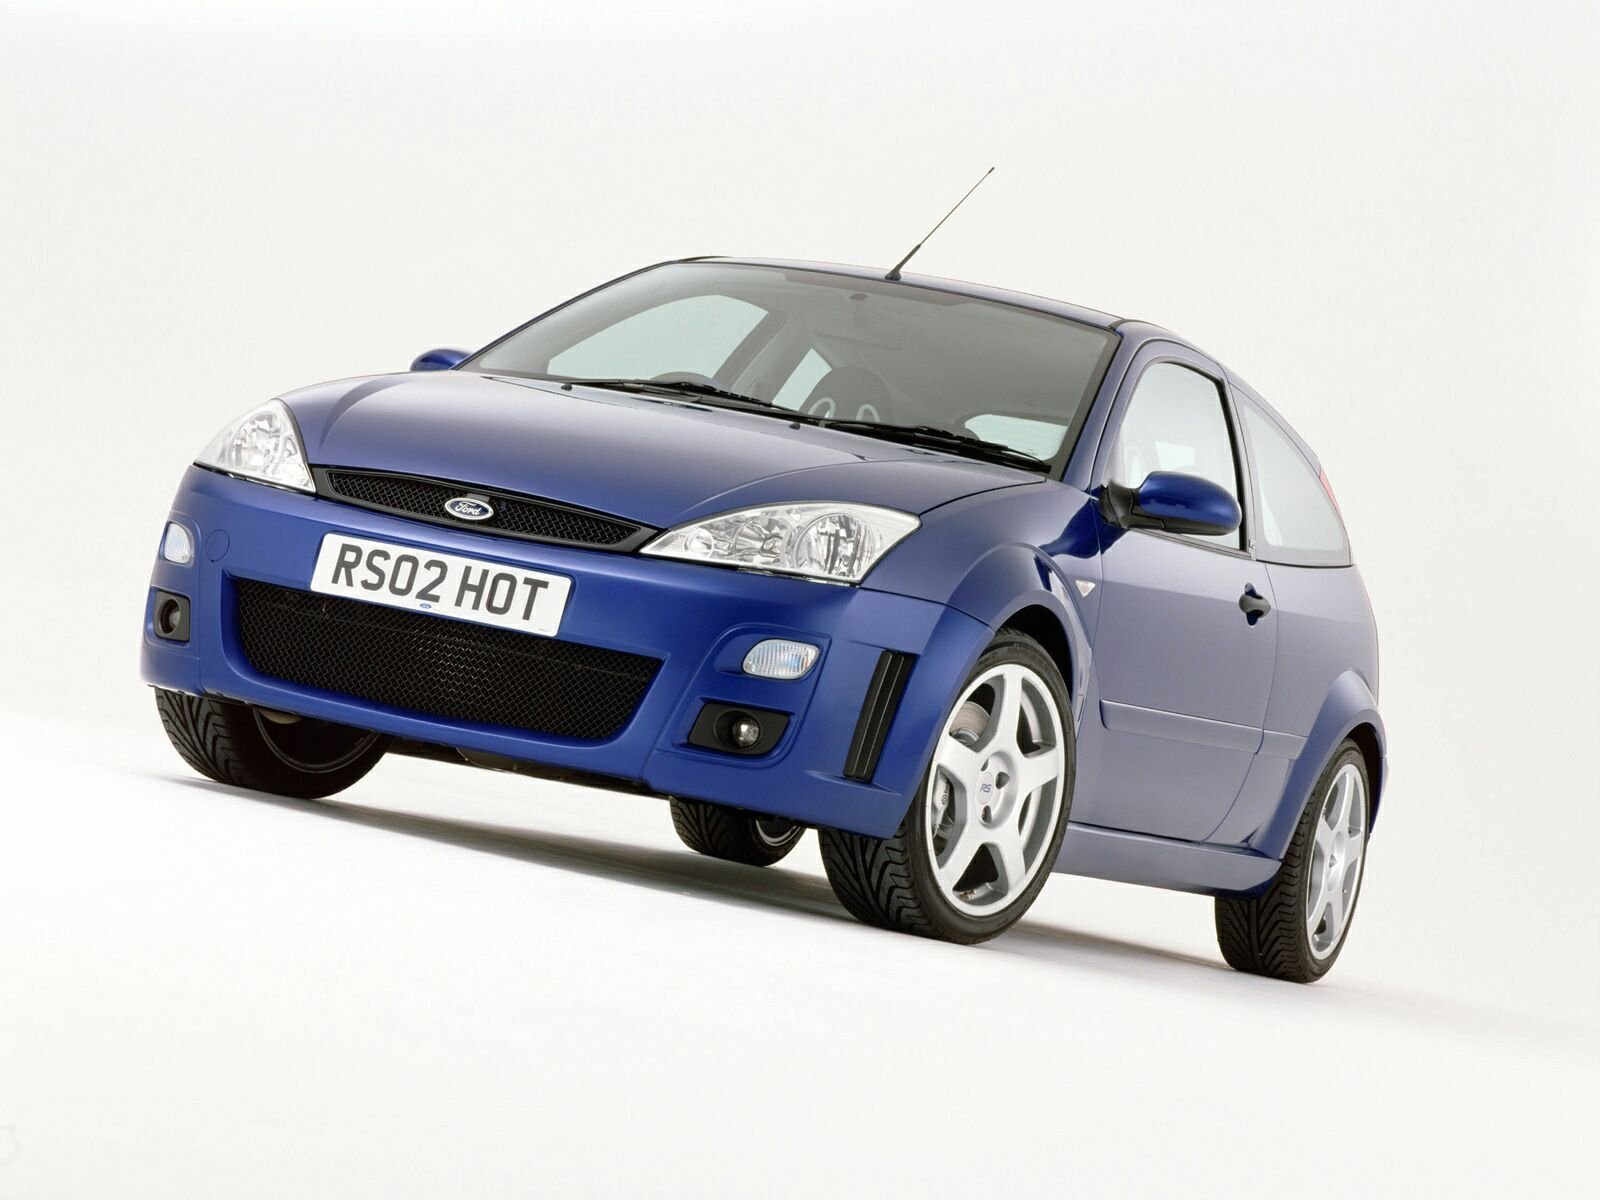 2002 ford focus rs picture 32389 car review top speed. Black Bedroom Furniture Sets. Home Design Ideas